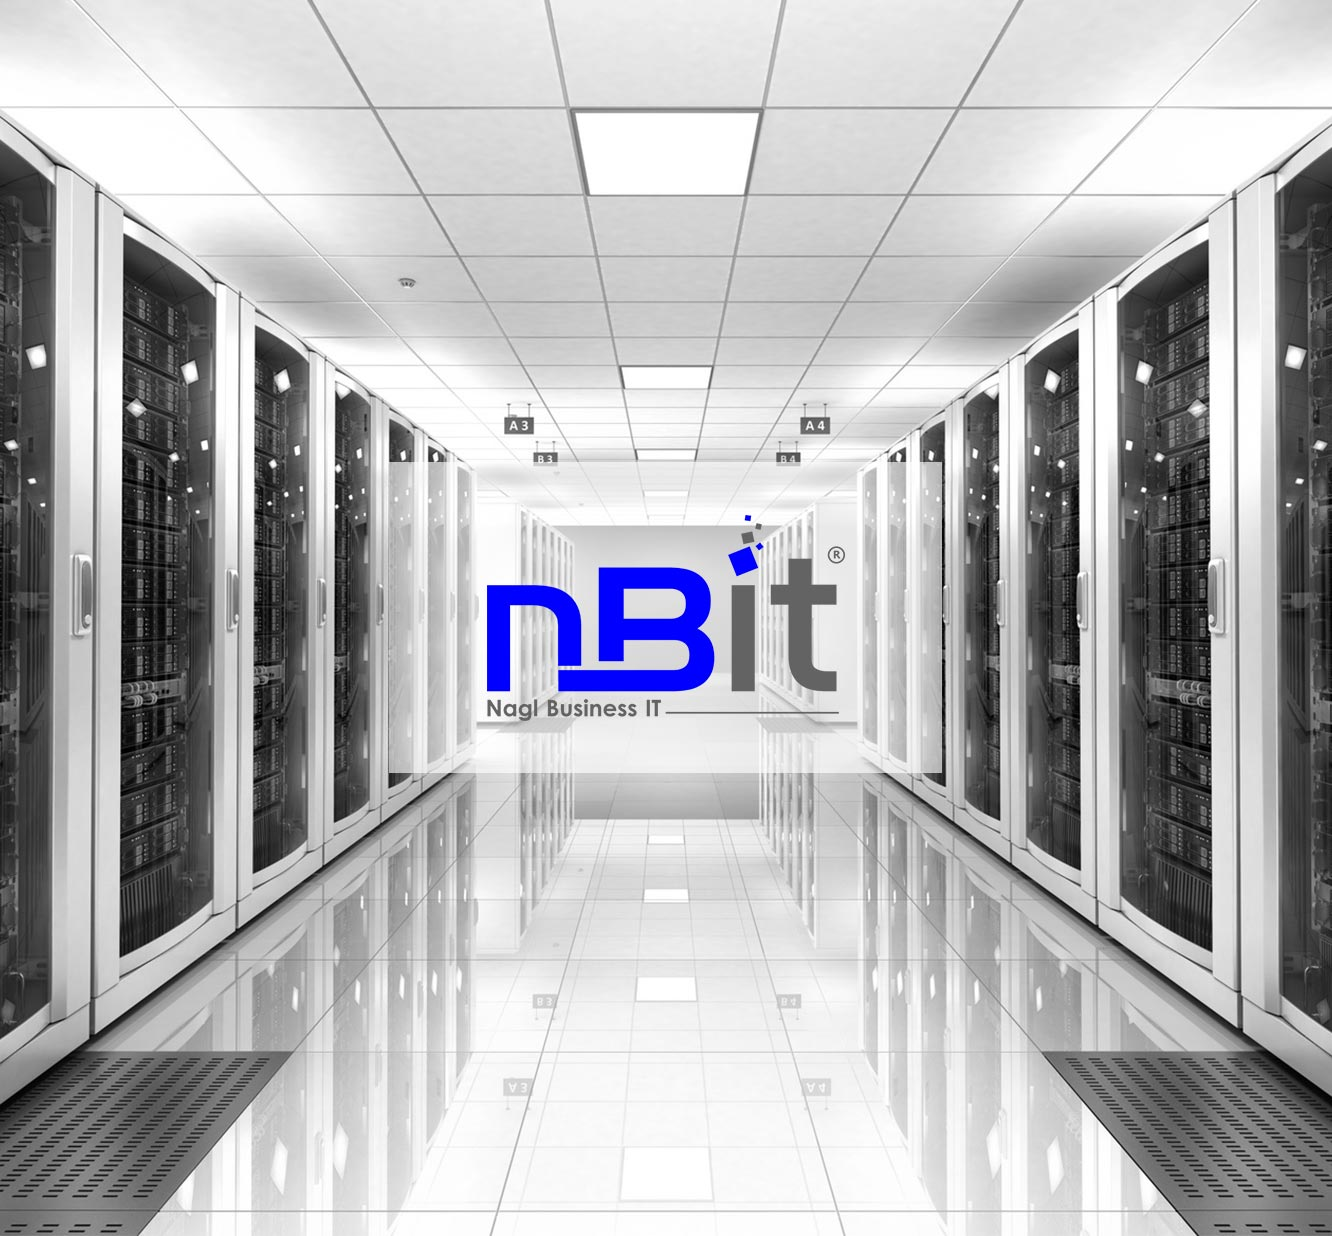 NBit -Nagl Business IT